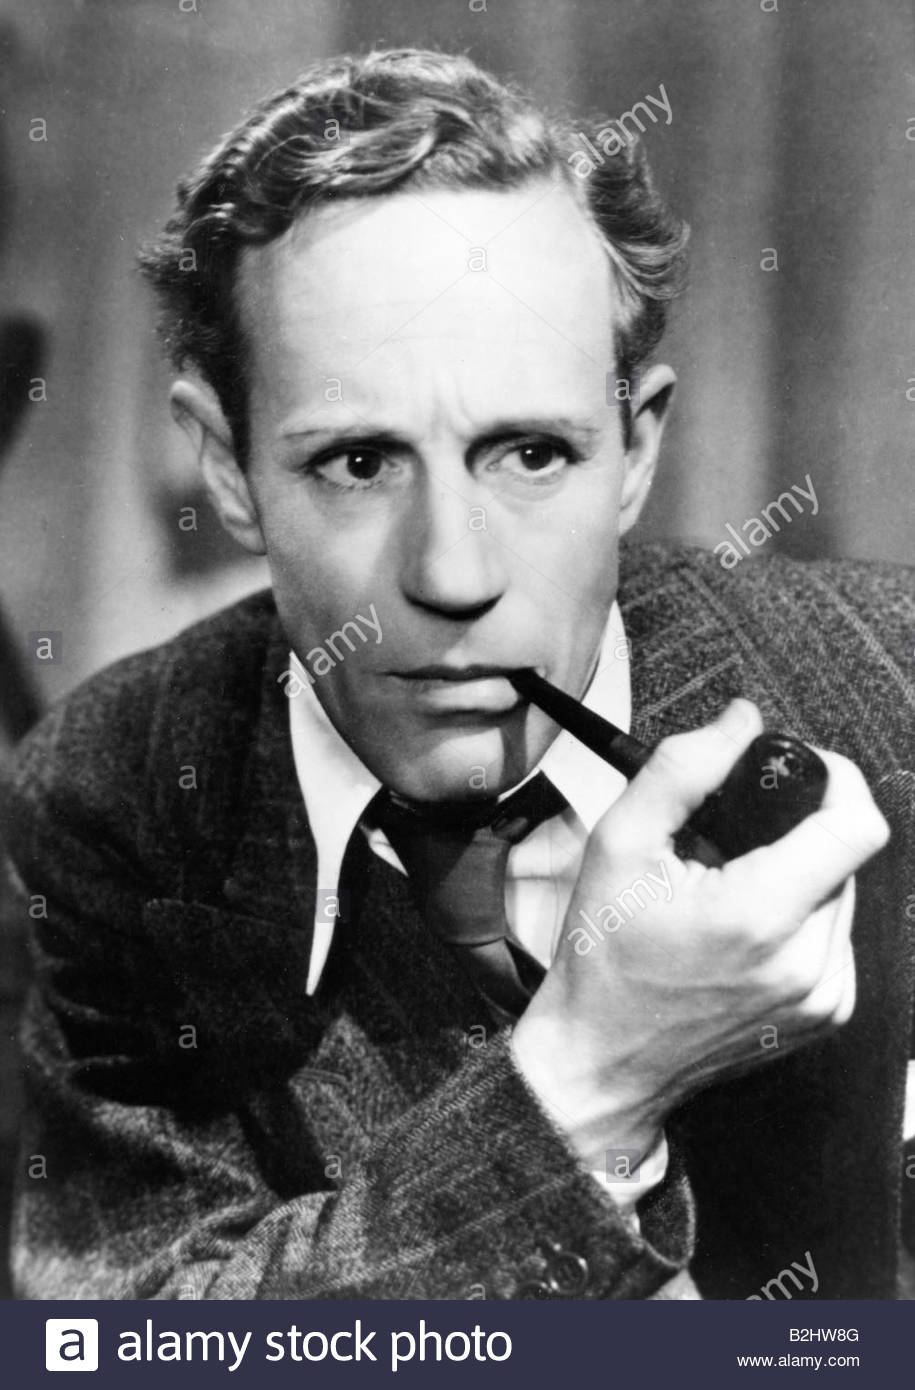 Howard, Leslie, 3.4.1893 - 1.6.1943, British actor, smoking pipe, 1930s / 1940s, Additional-Rights-Clearances-NA - Stock Image